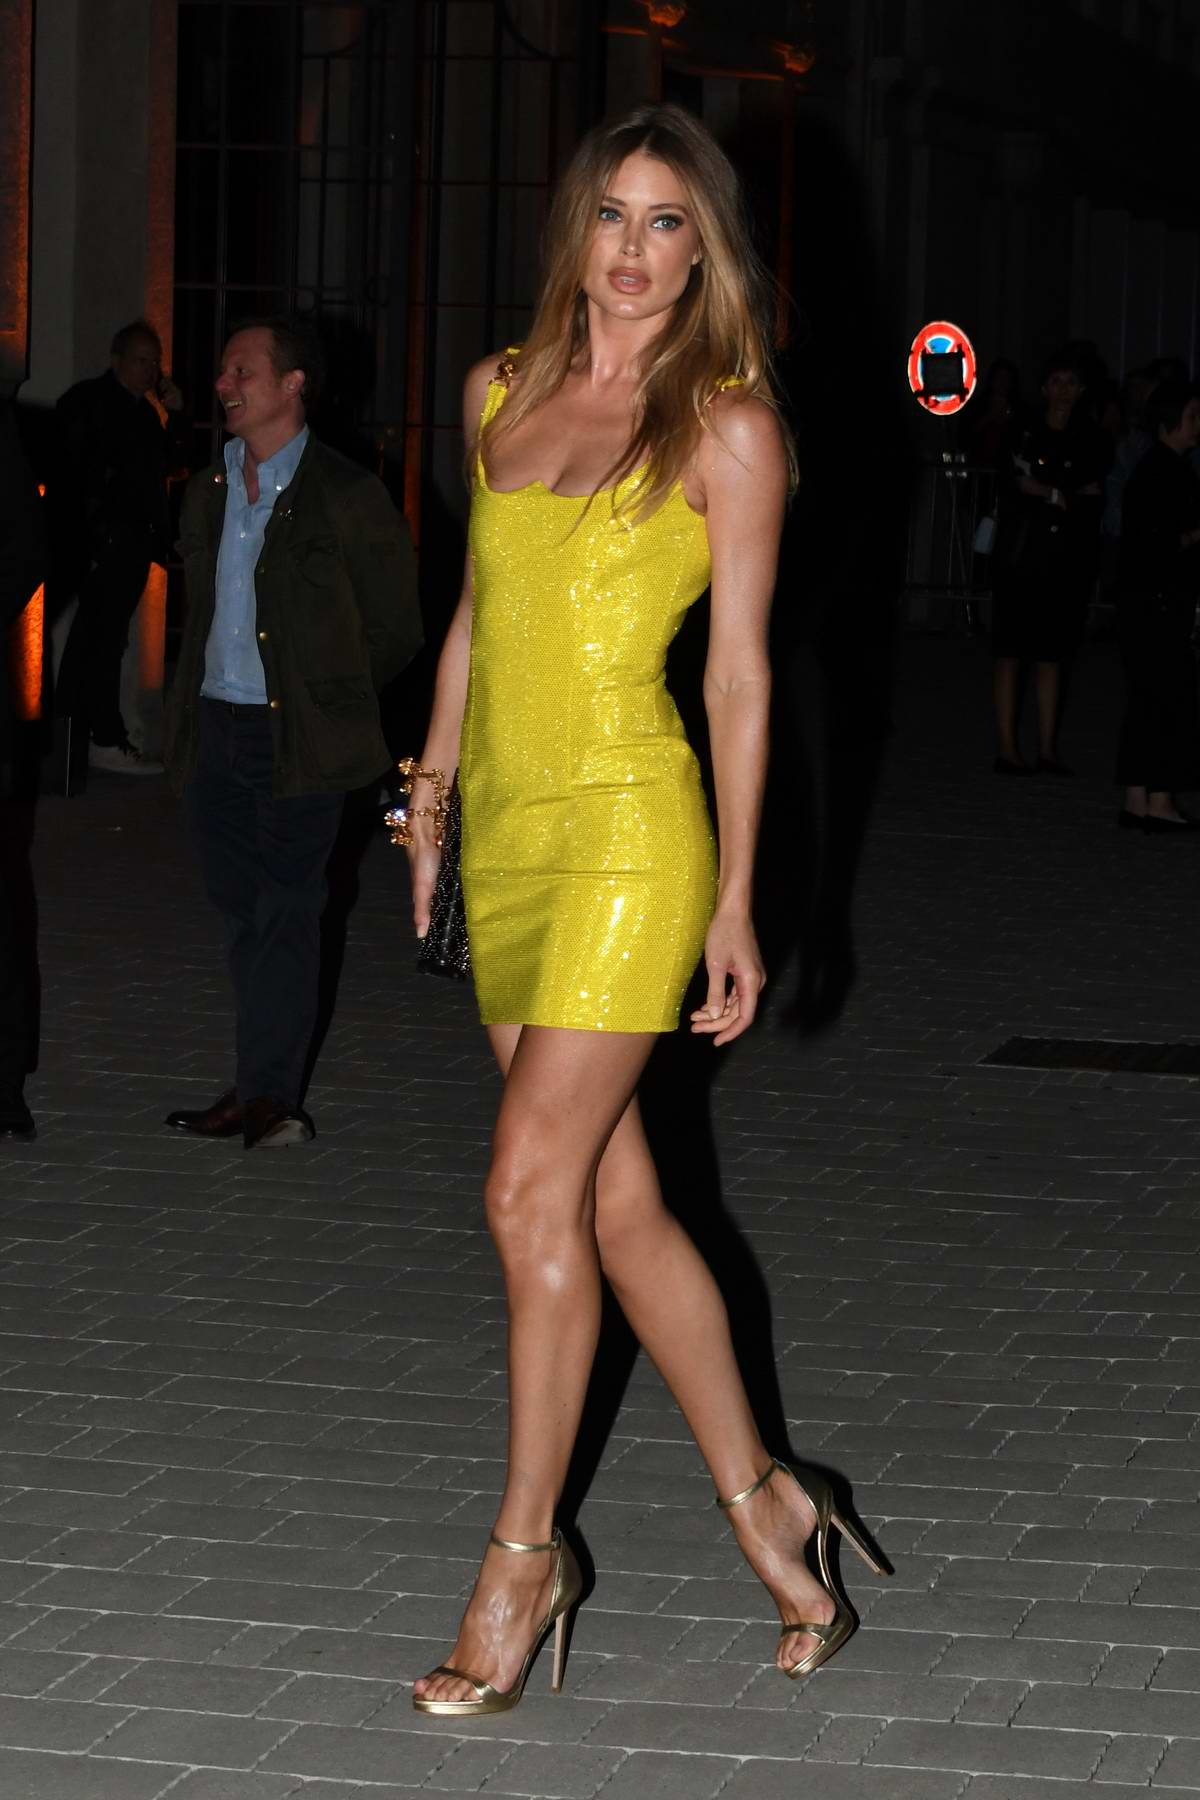 Doutzen Kroes attends the Varsace show SS 2020 and after-party during Milan Fashion Week in Milan, Italy